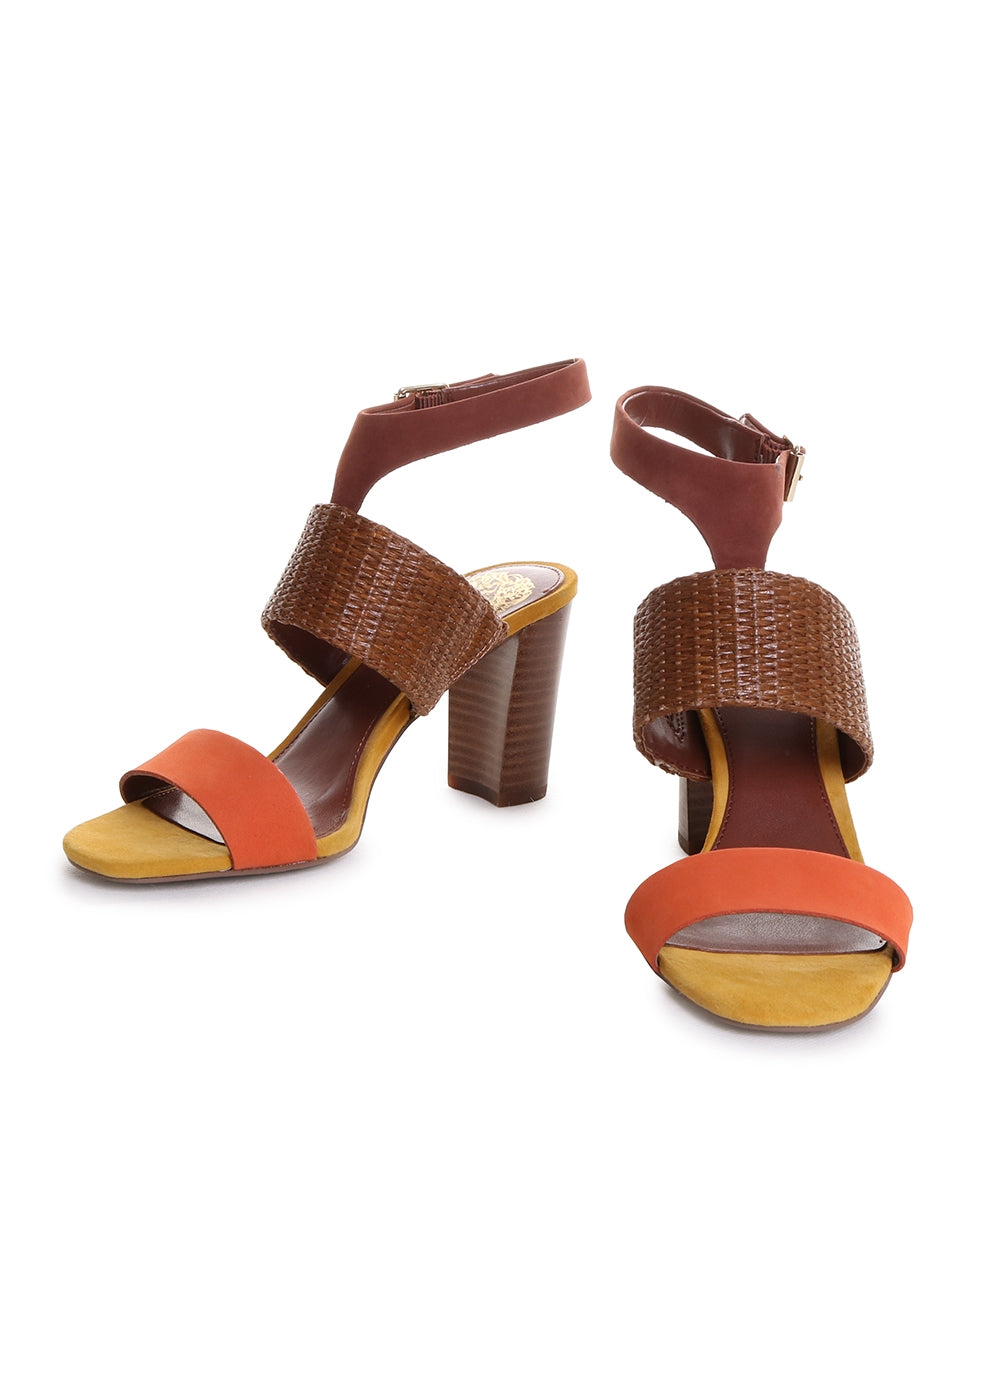 Warma Ankle Strap Suede Block Heel Sandal in Juice Nut Mix Dandelion